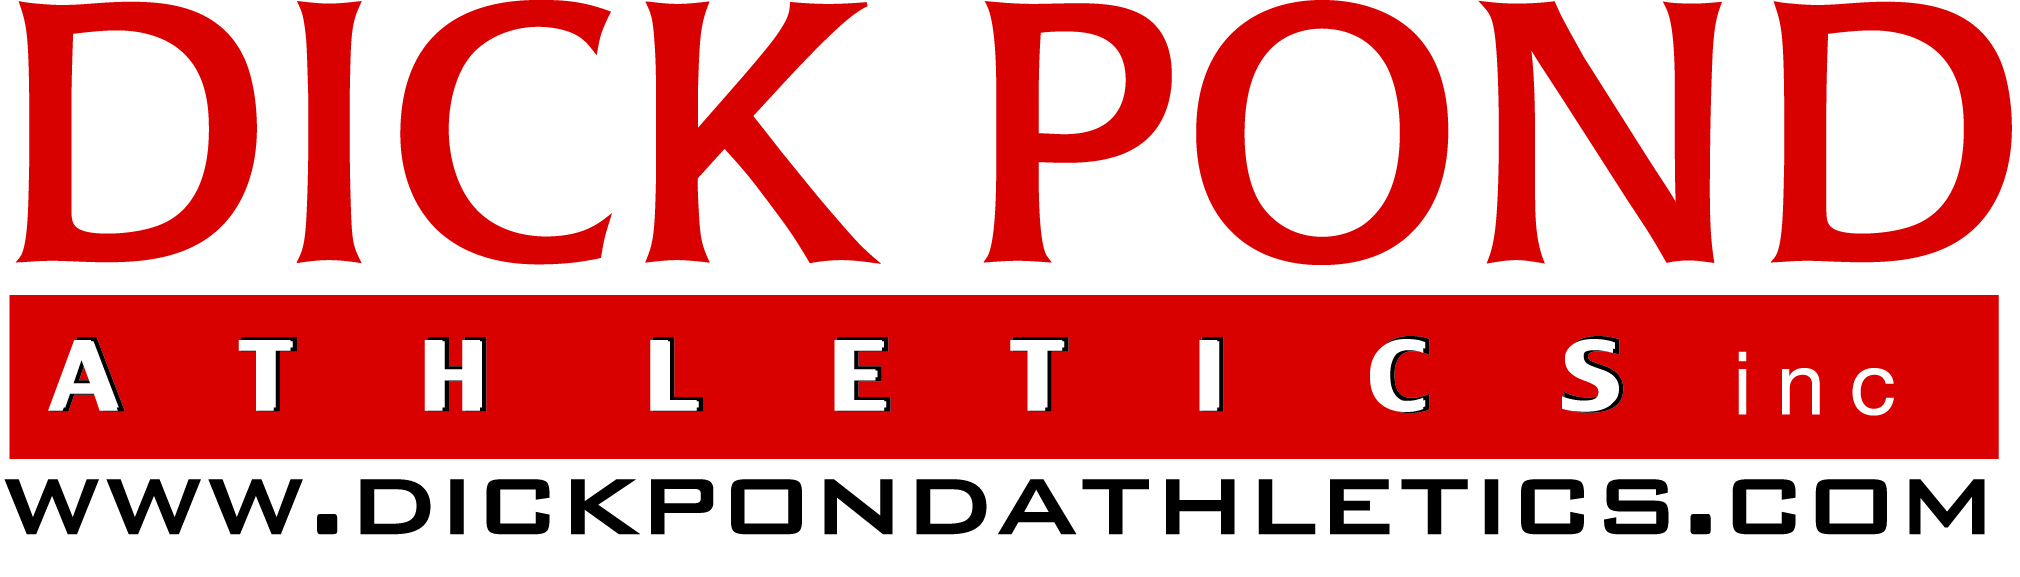 Dick Pond Athletics, Inc.